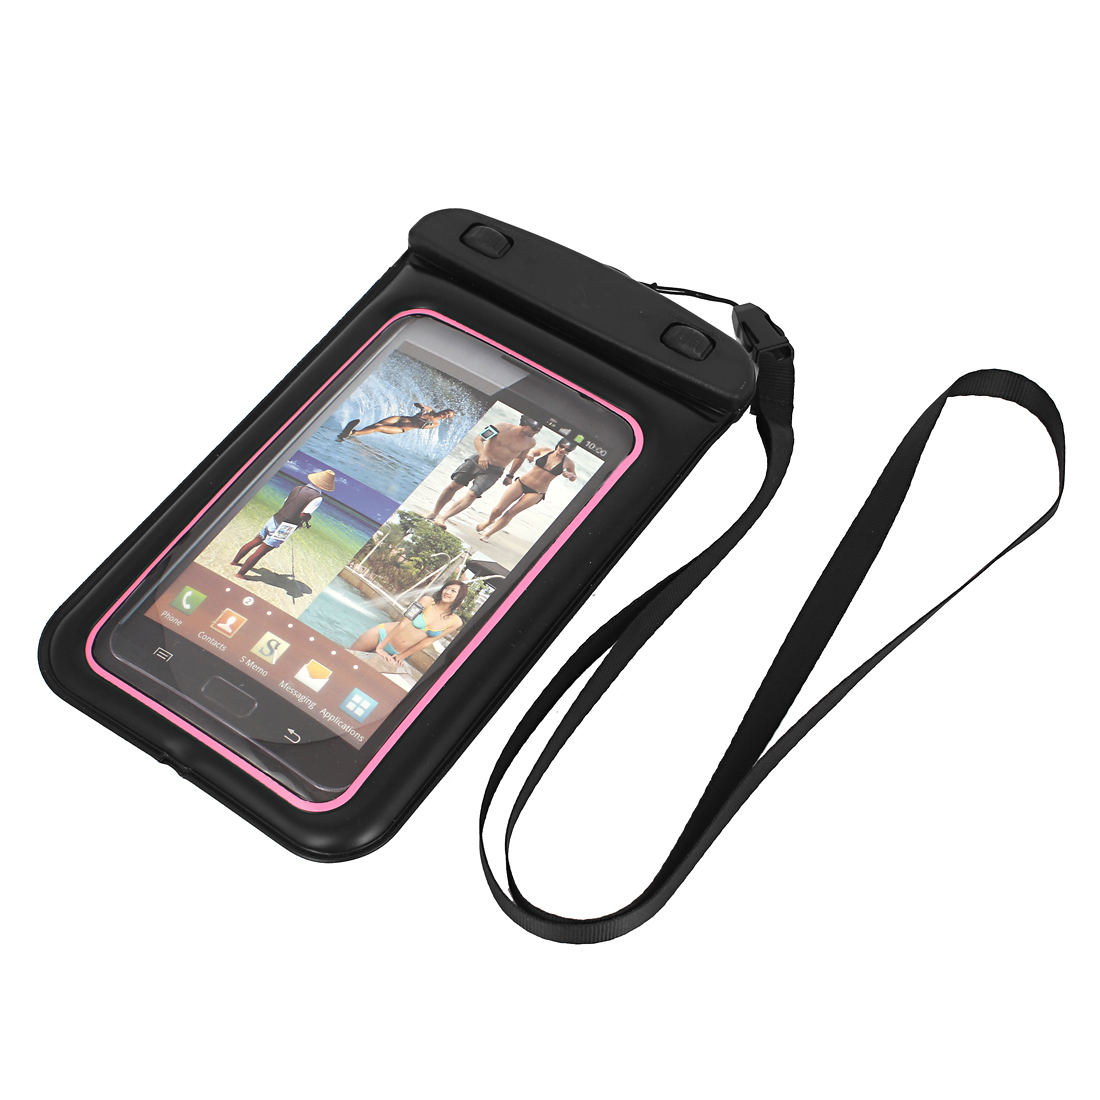 "Underwater Waterproof Case Dry Bag Cover Pouch Black Pink for 5.5"" Cell Phone"